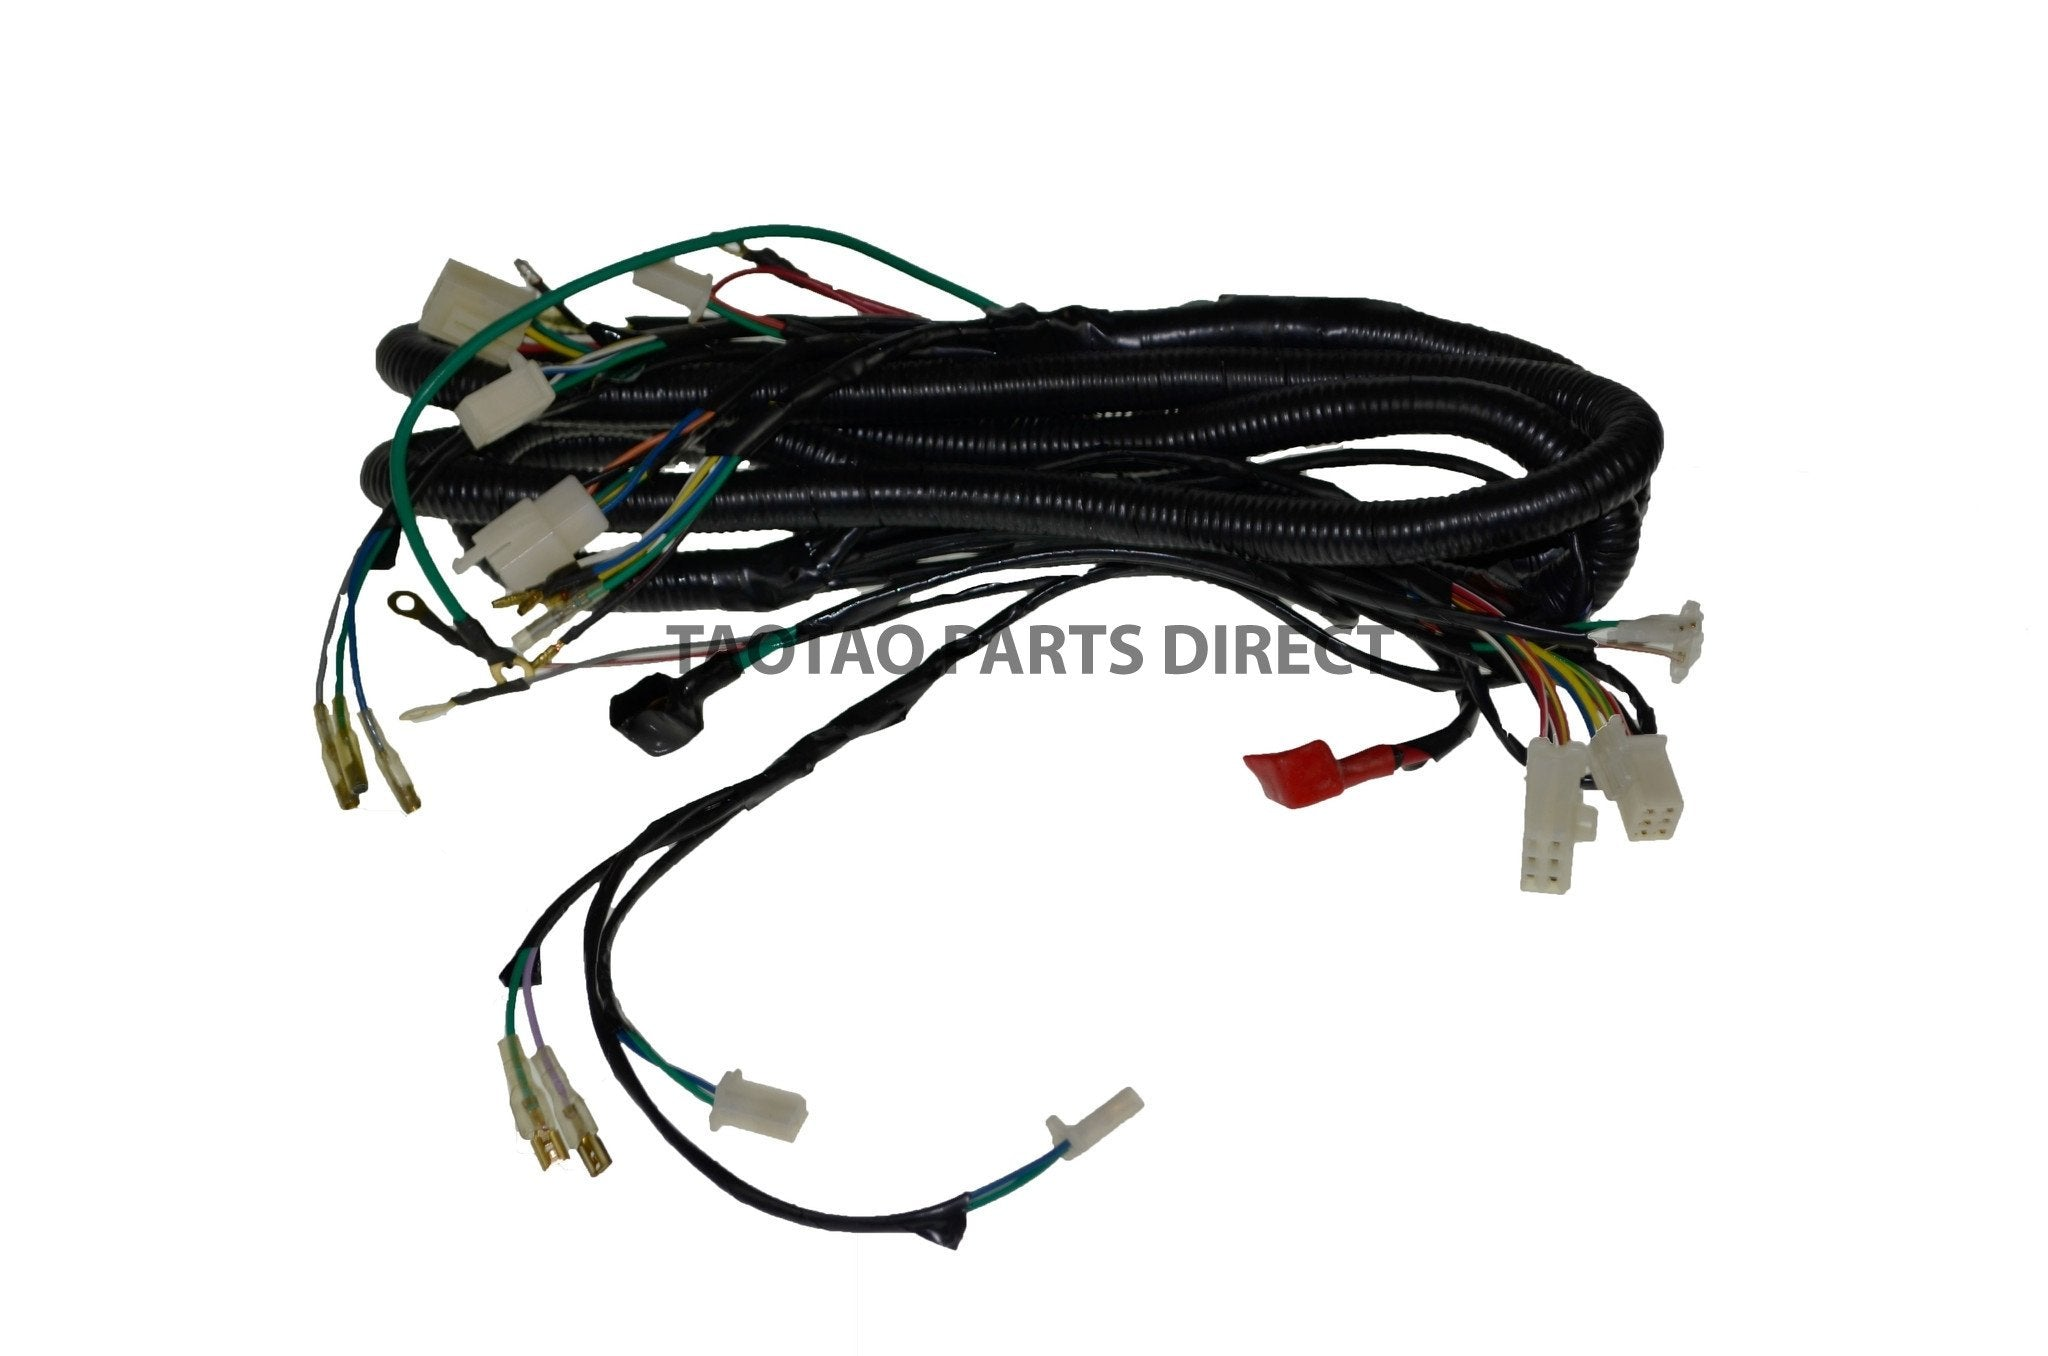 ATK125A Wire Harness #21 - TaoTaoPartsDirect.com